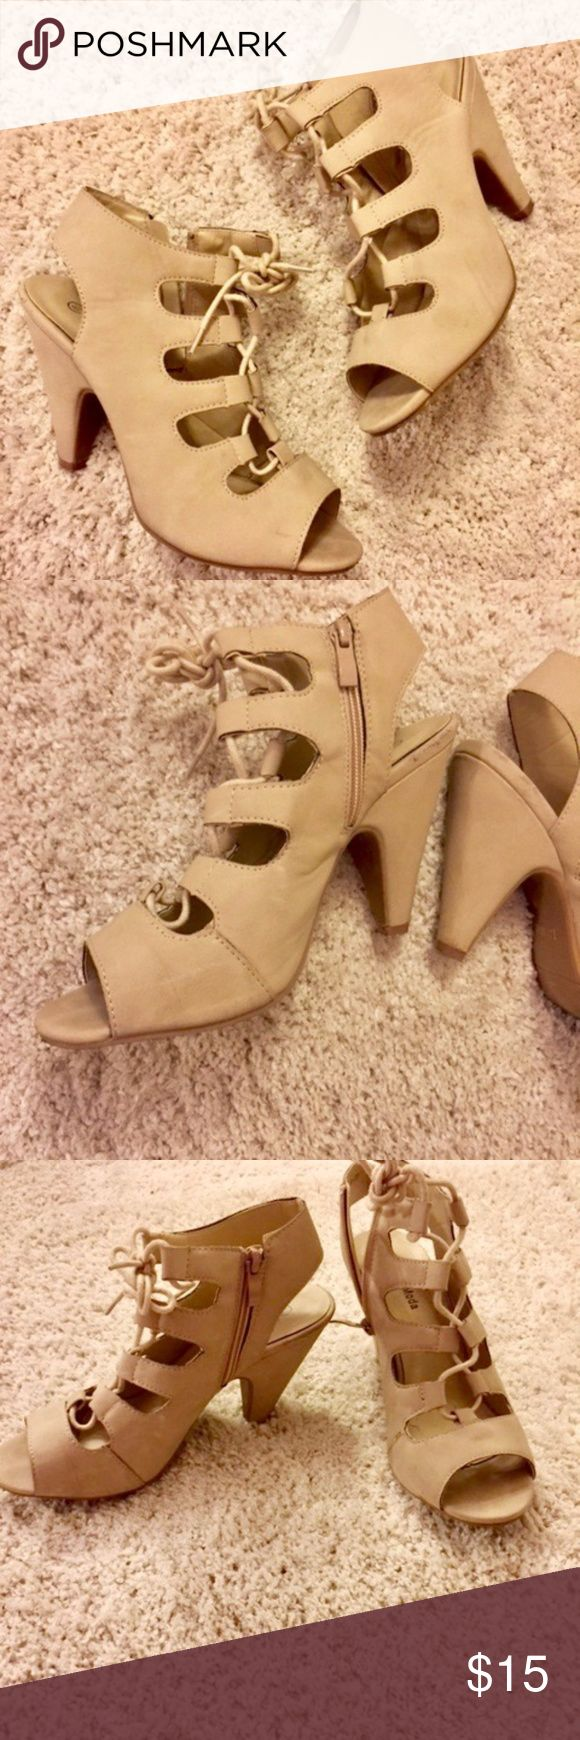 Lace-Up Strappy Nude Heels Sz 8.5 Faux suede beige/nude strappy heels with side zip closure in great condition! Bought these and wore them once for my college graduation! Top Moda Shoes Heels